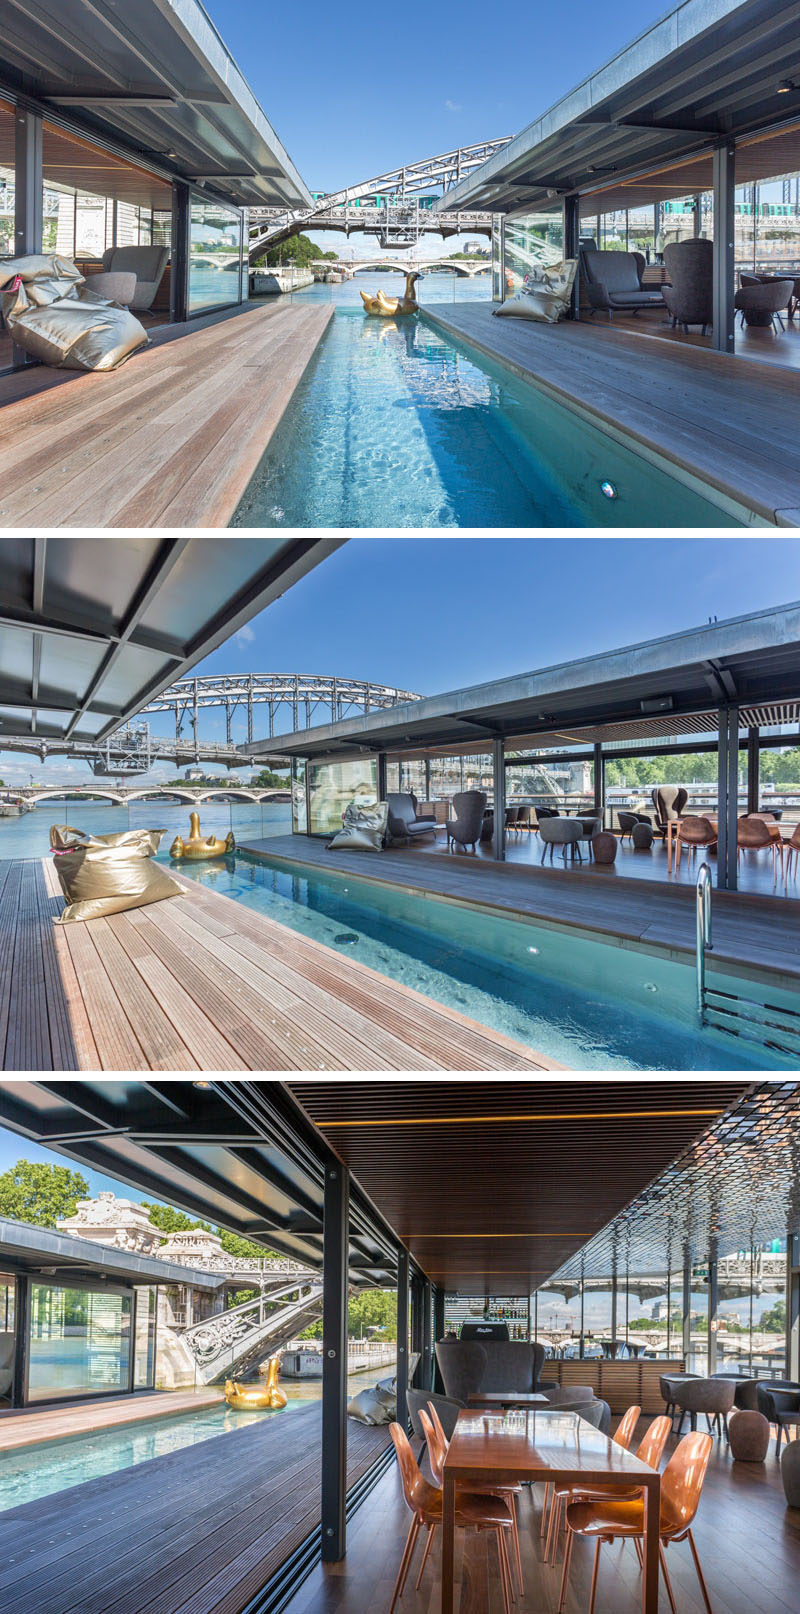 18 Photos of OFF, The Newly Opened Floating Hotel In Paris // The Pool and Bar Area